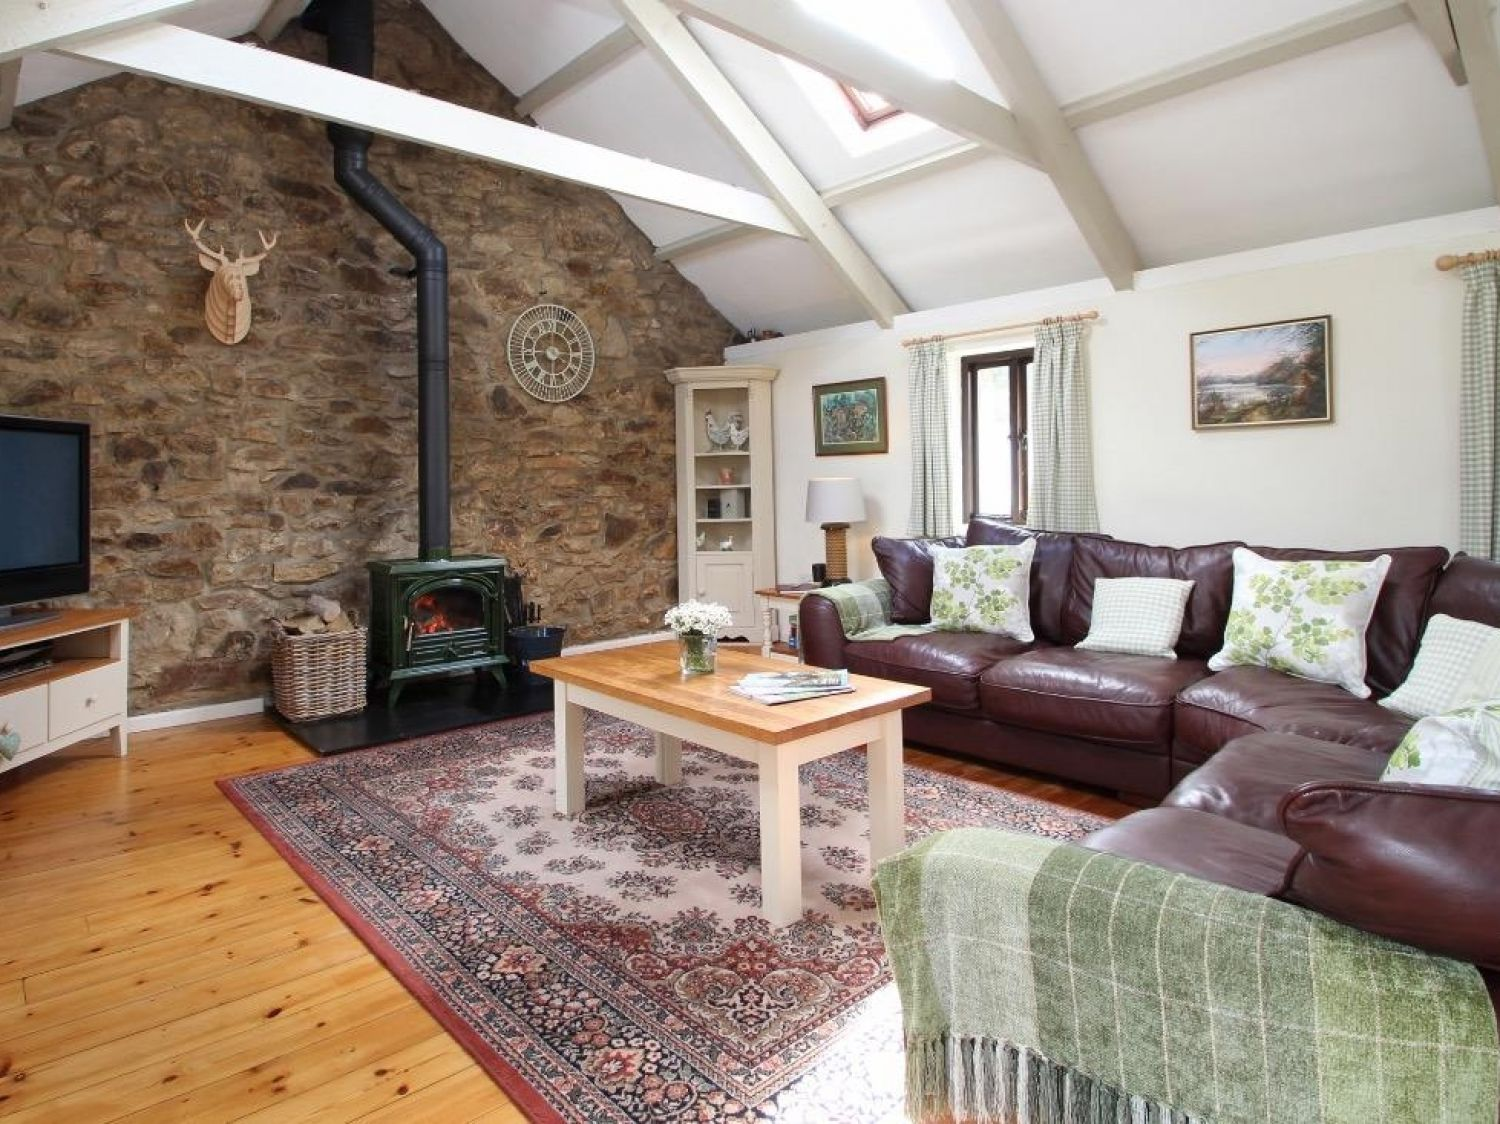 Treamble Barn in Perranporth - sleeps 6 people